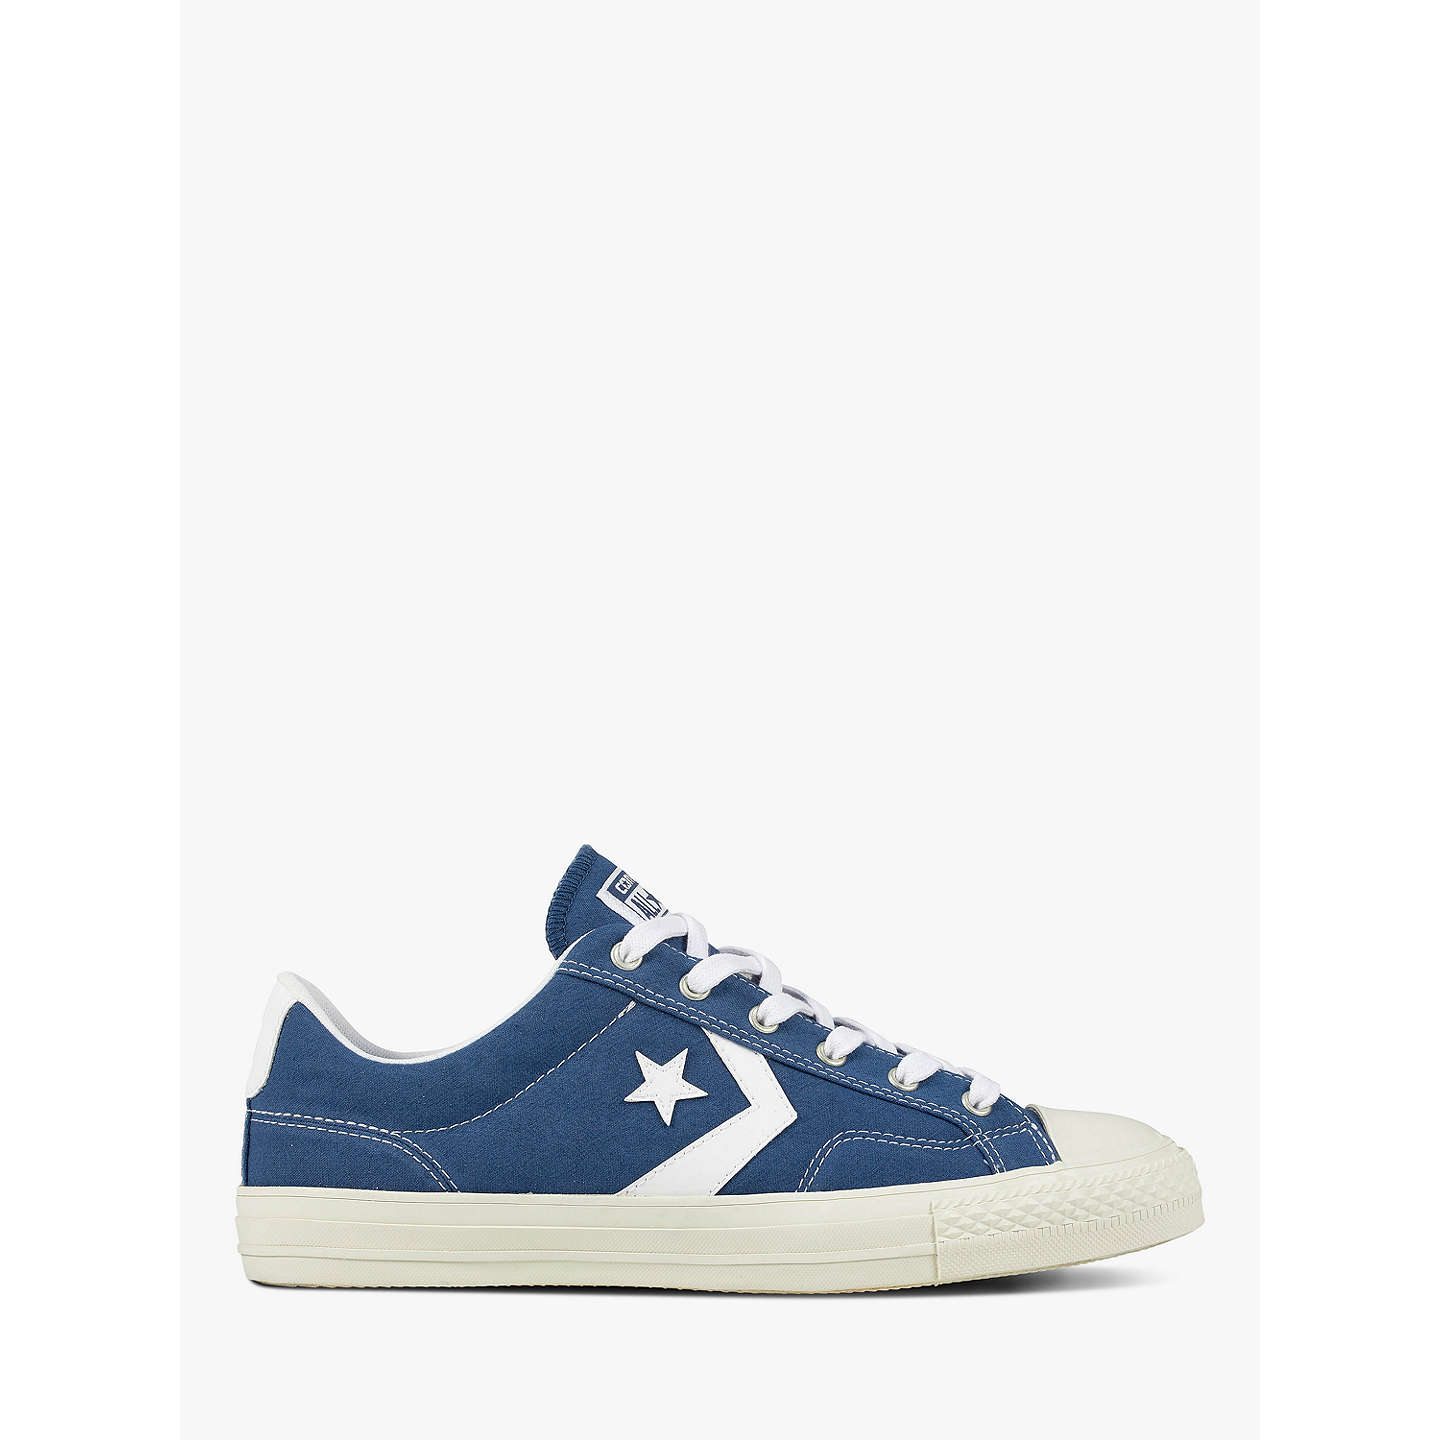 STAR PLAYER - Trainers - mason blue/white Affordable kaOX4k